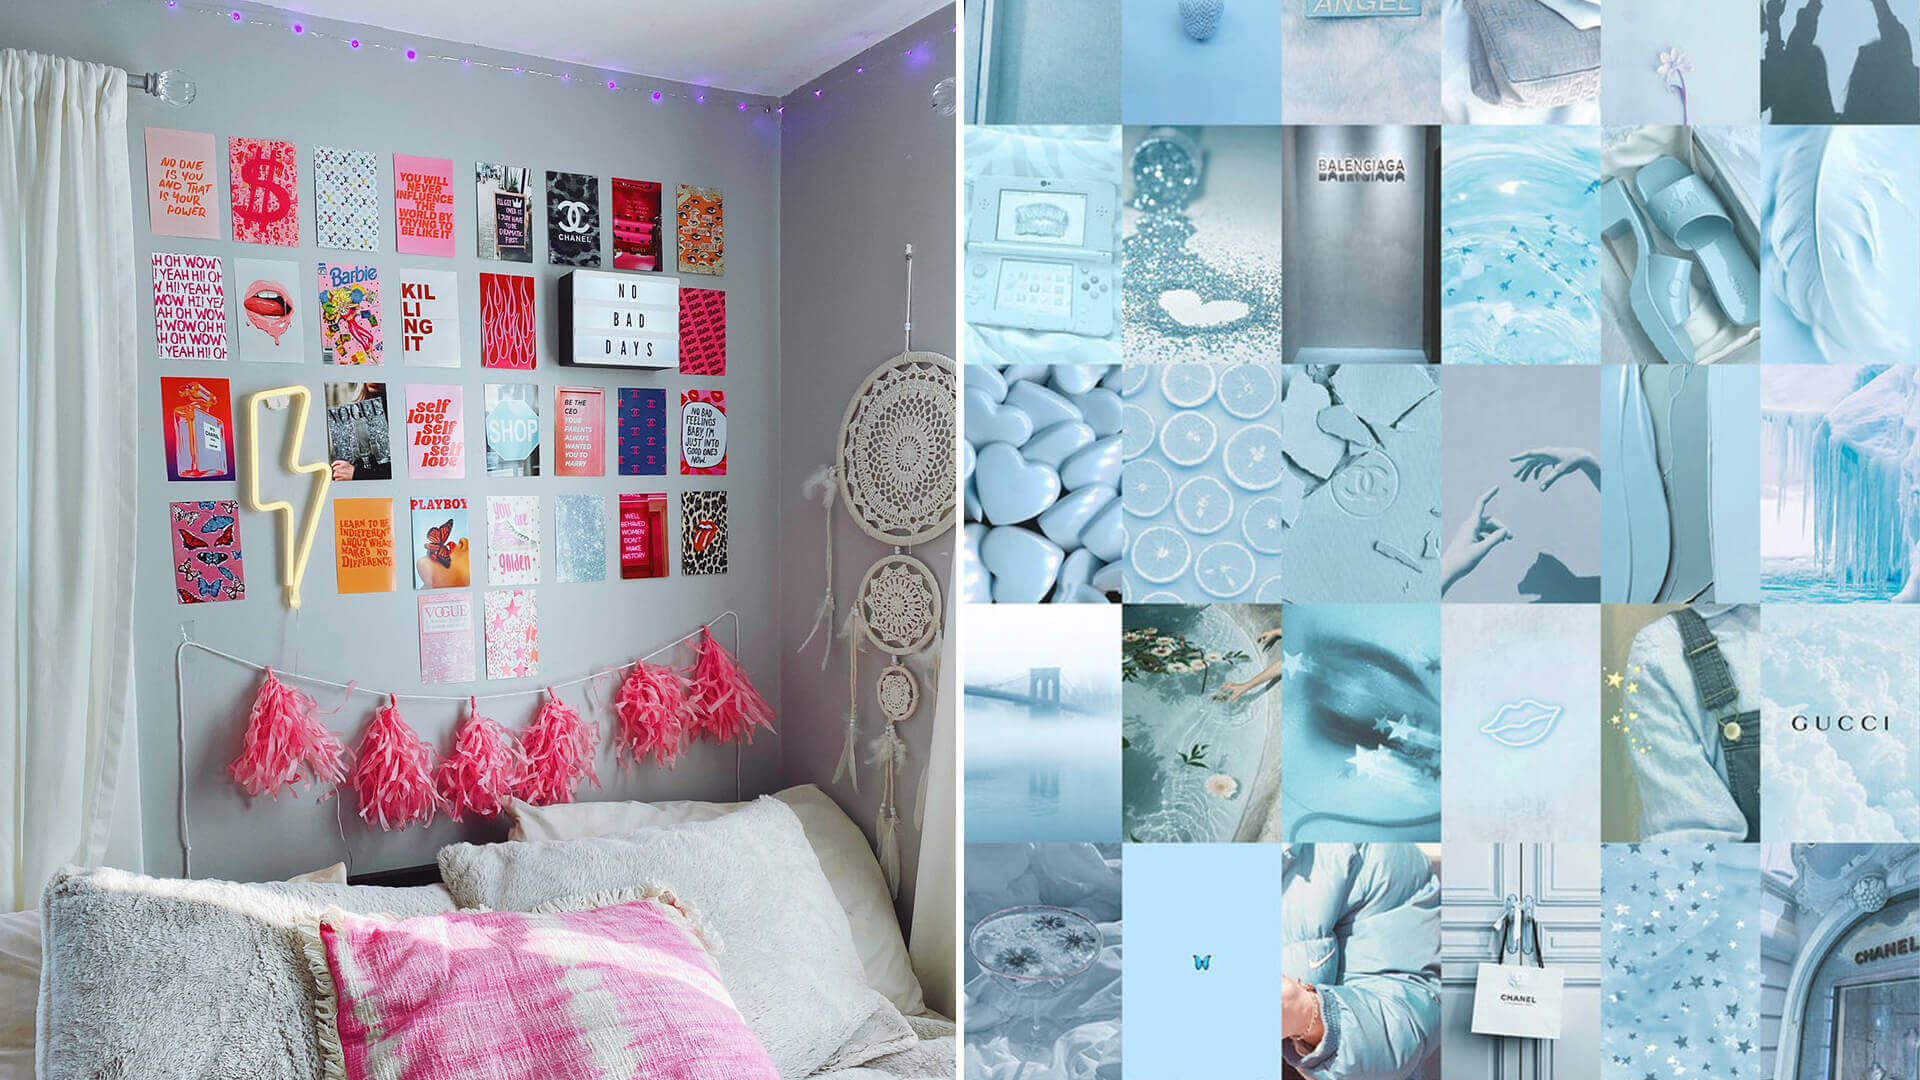 Aesthetic Photo Wall Collage Ideas